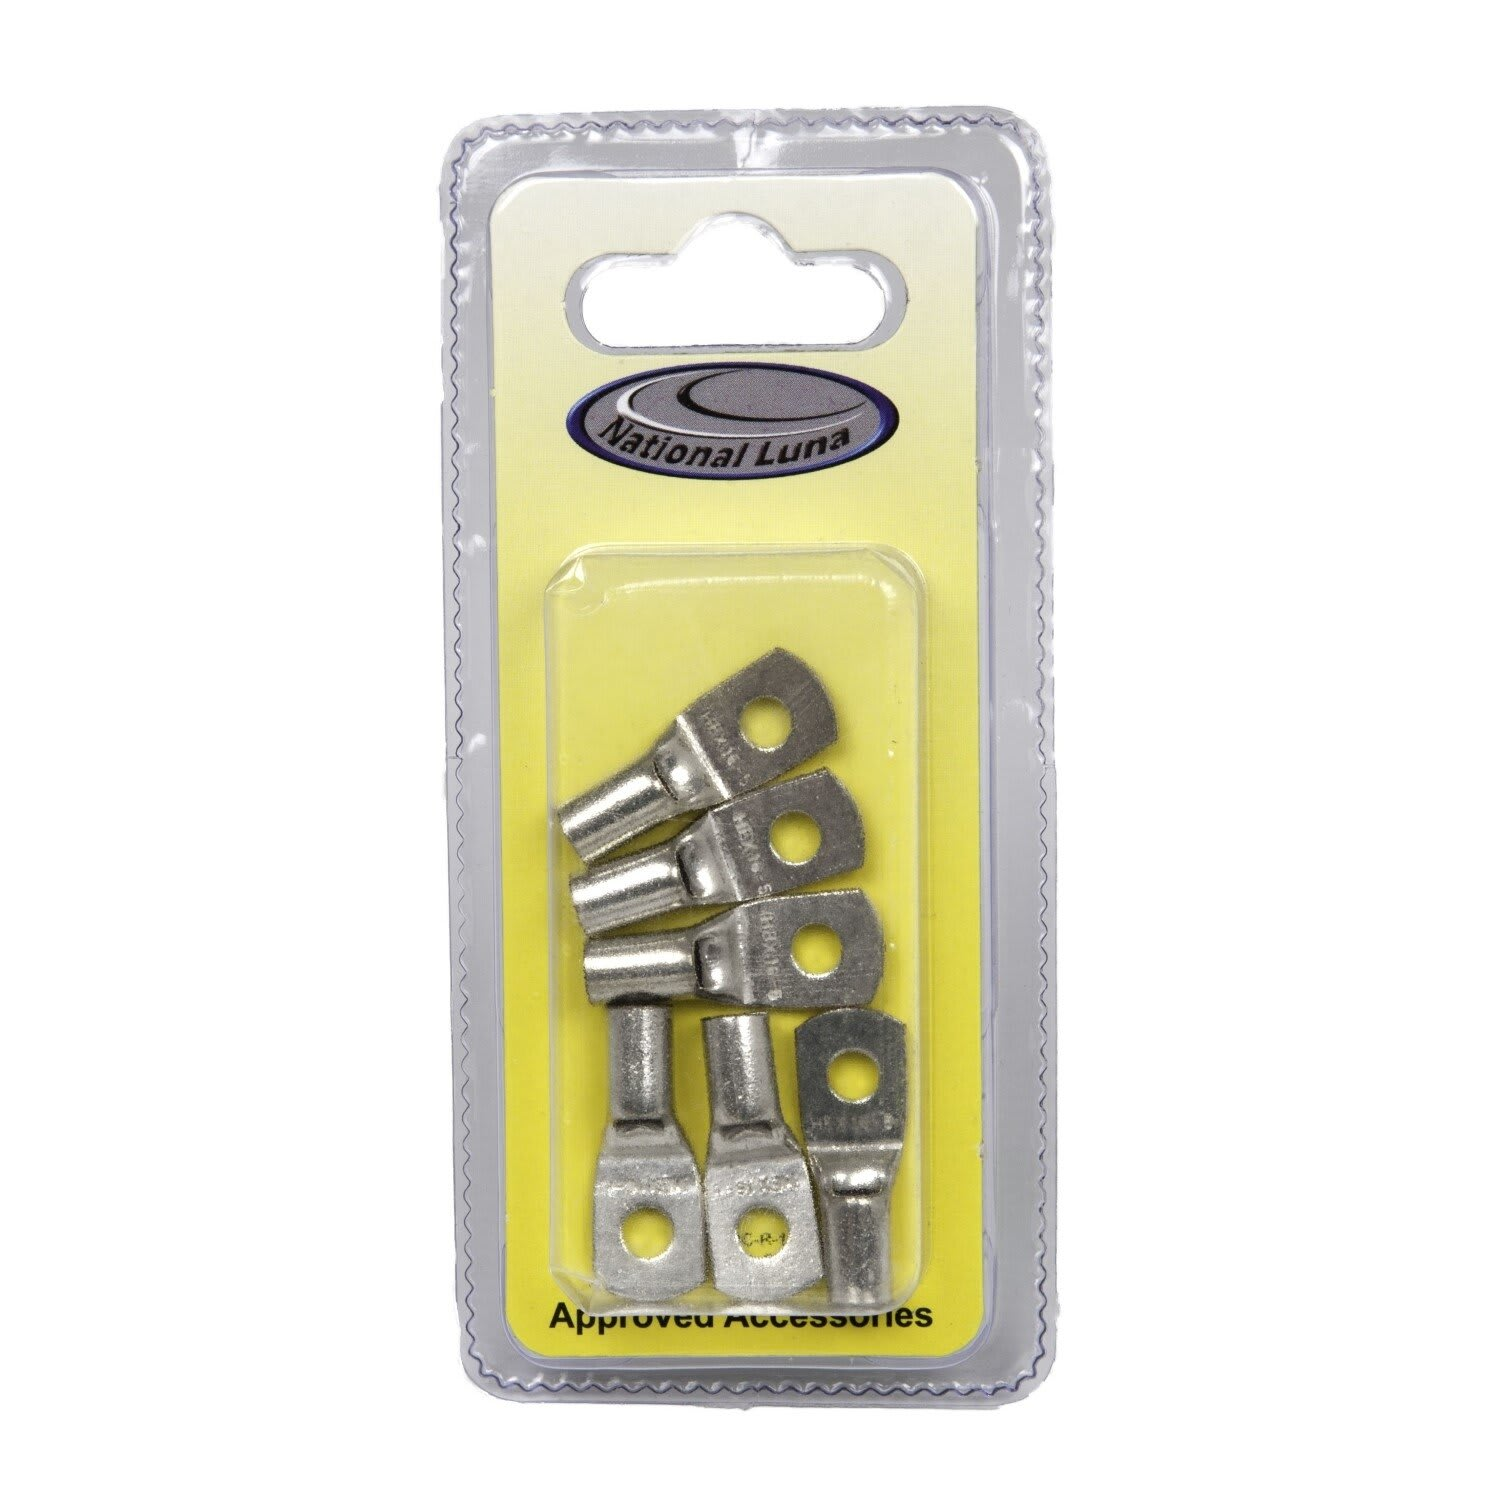 National Luna Cable Lugs 16x8 (6pack)